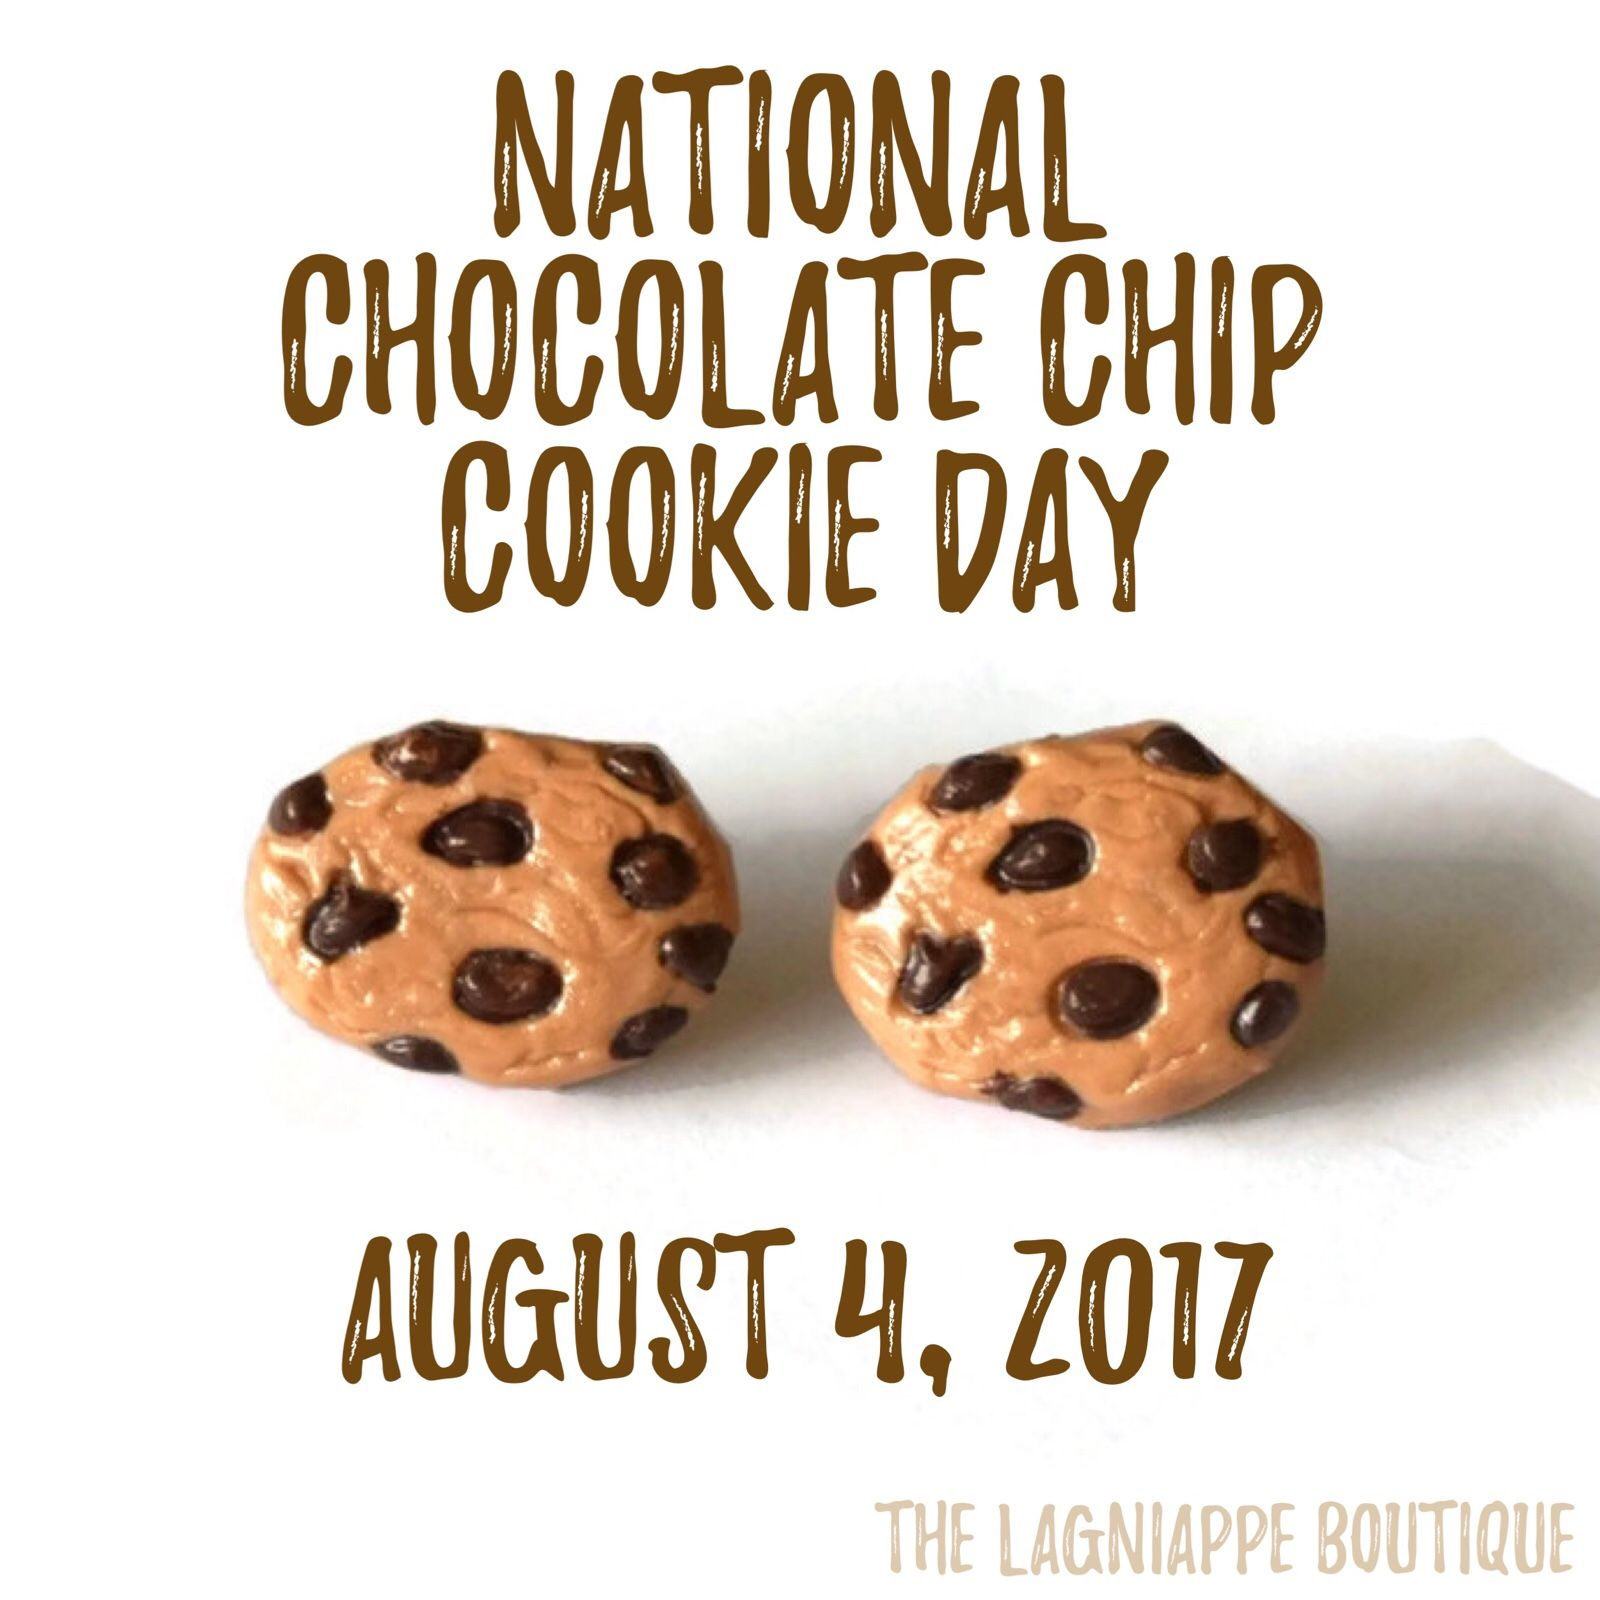 Celebrate National Chocolate Chip Cookie Day By Making Your Favorite Cookies And Adding Extra Chocolate Ch Chocolate Chip Cookies Favorite Cookies Chip Cookies